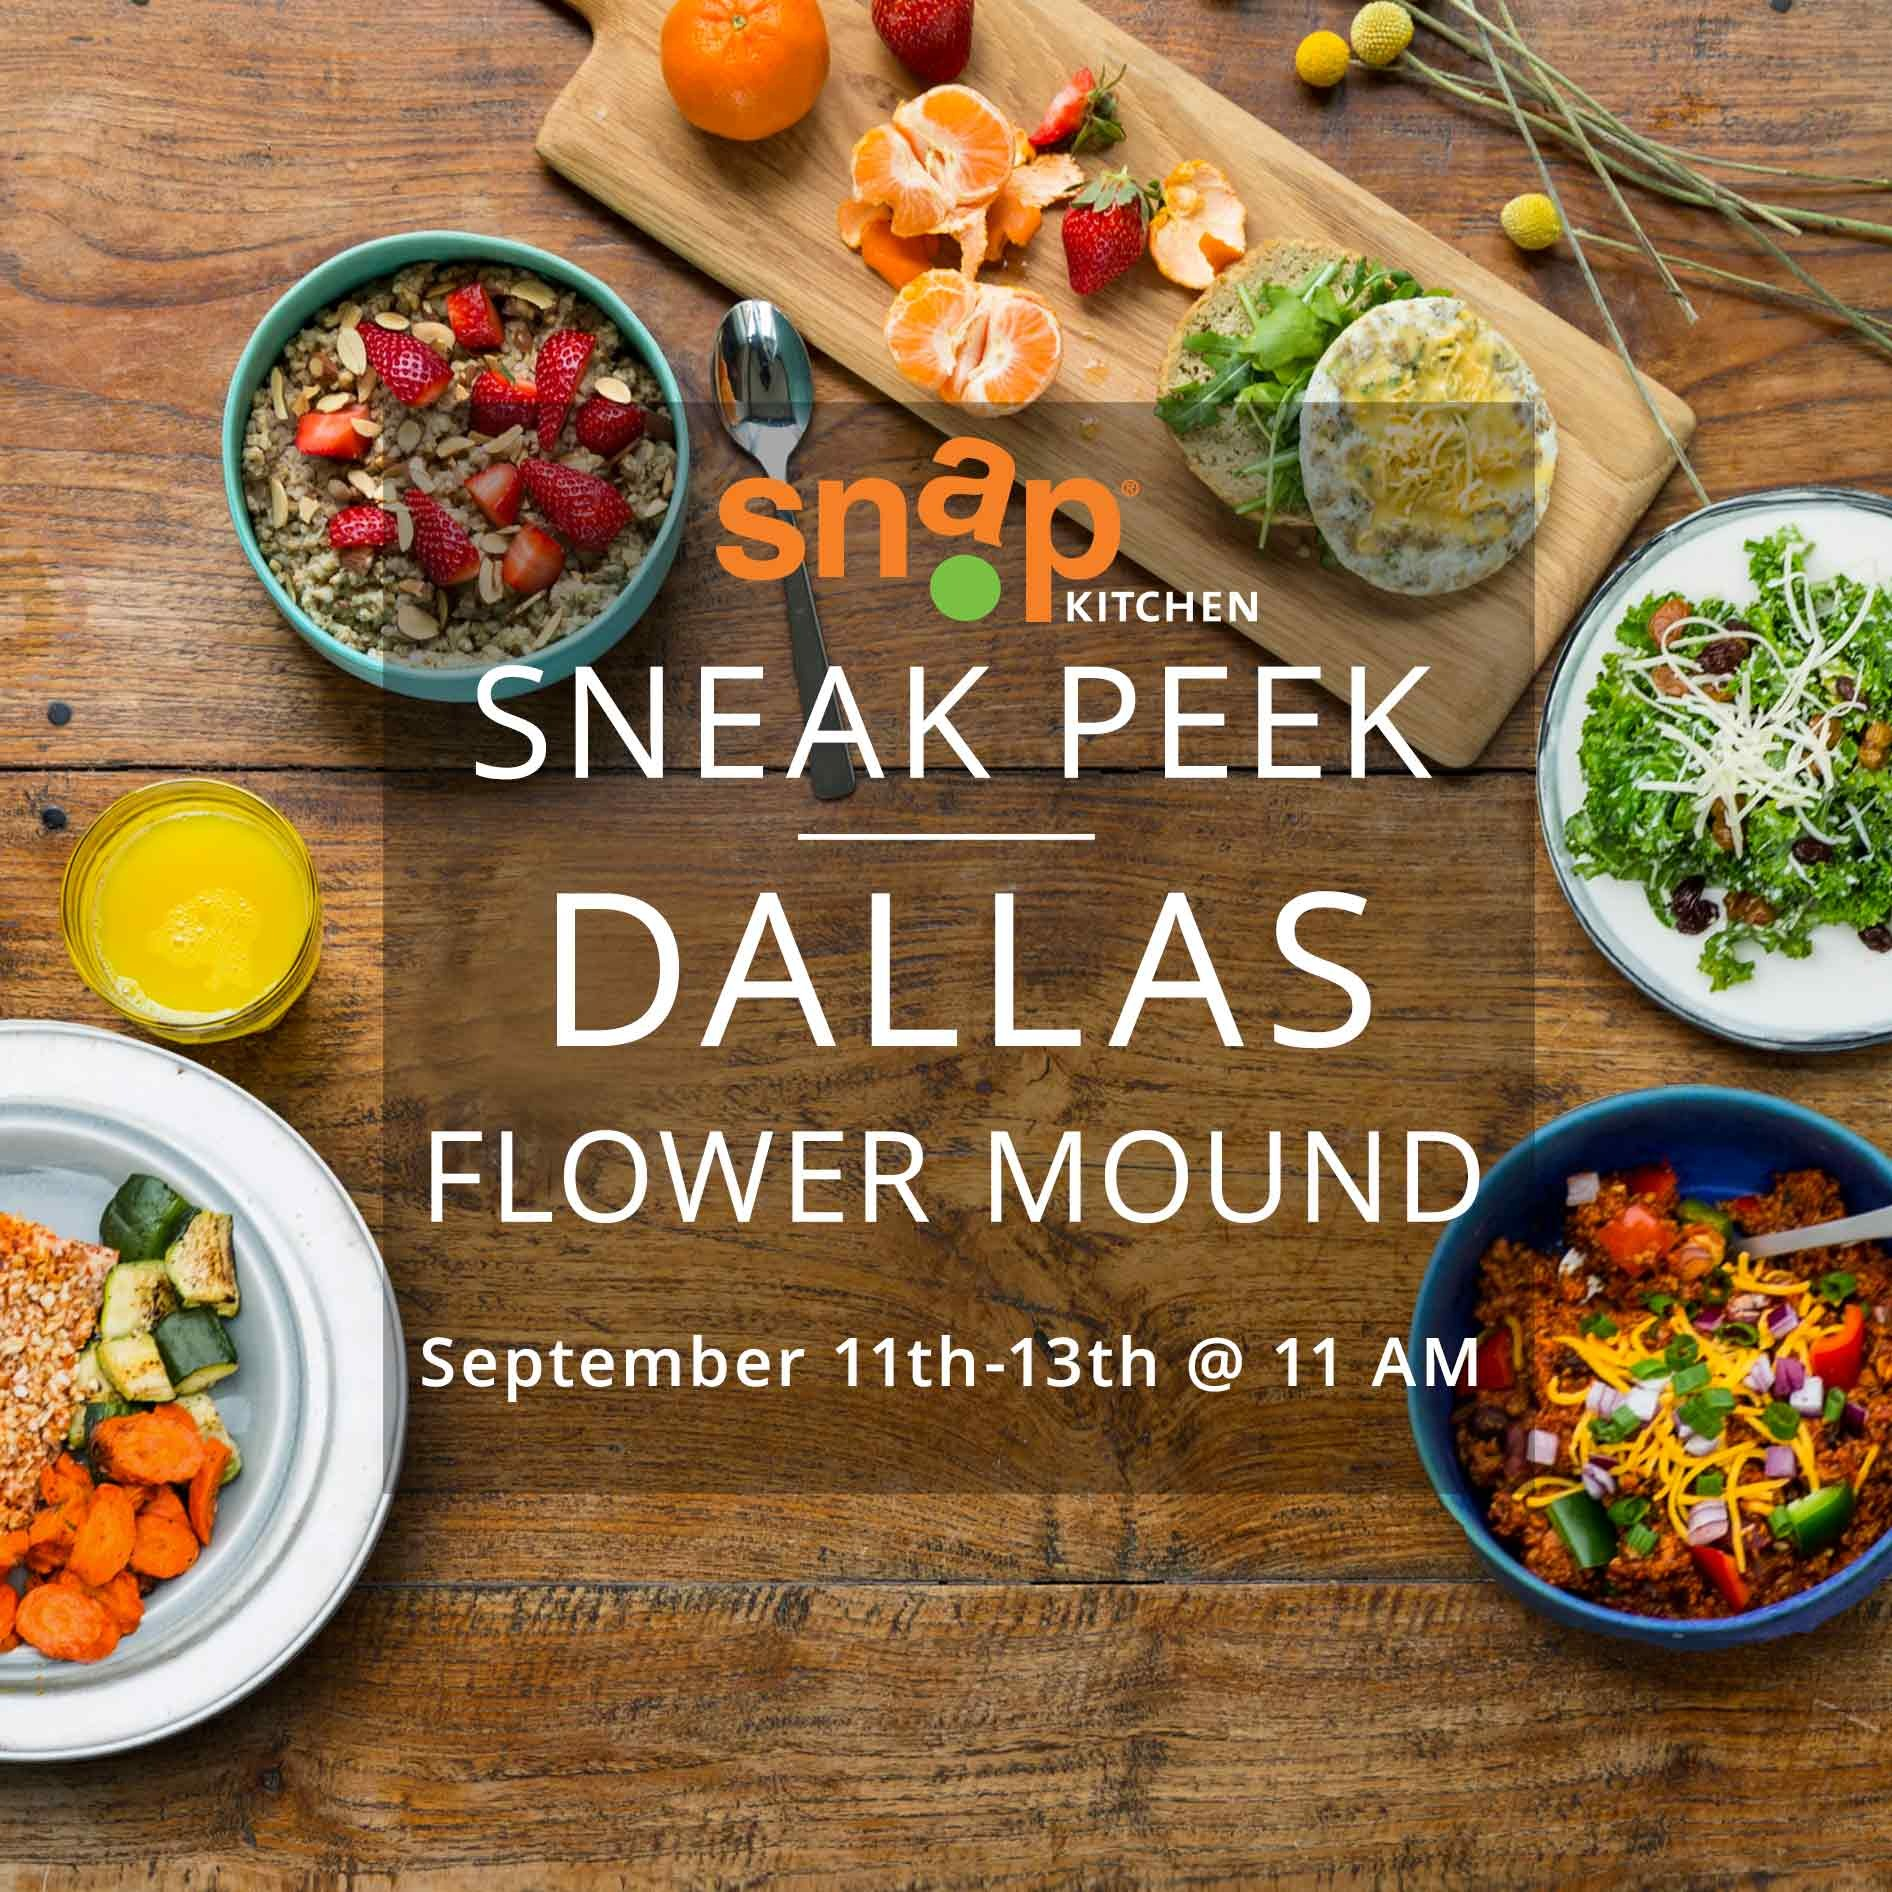 Snap Kitchen Sprouts New Location In Flower Mound